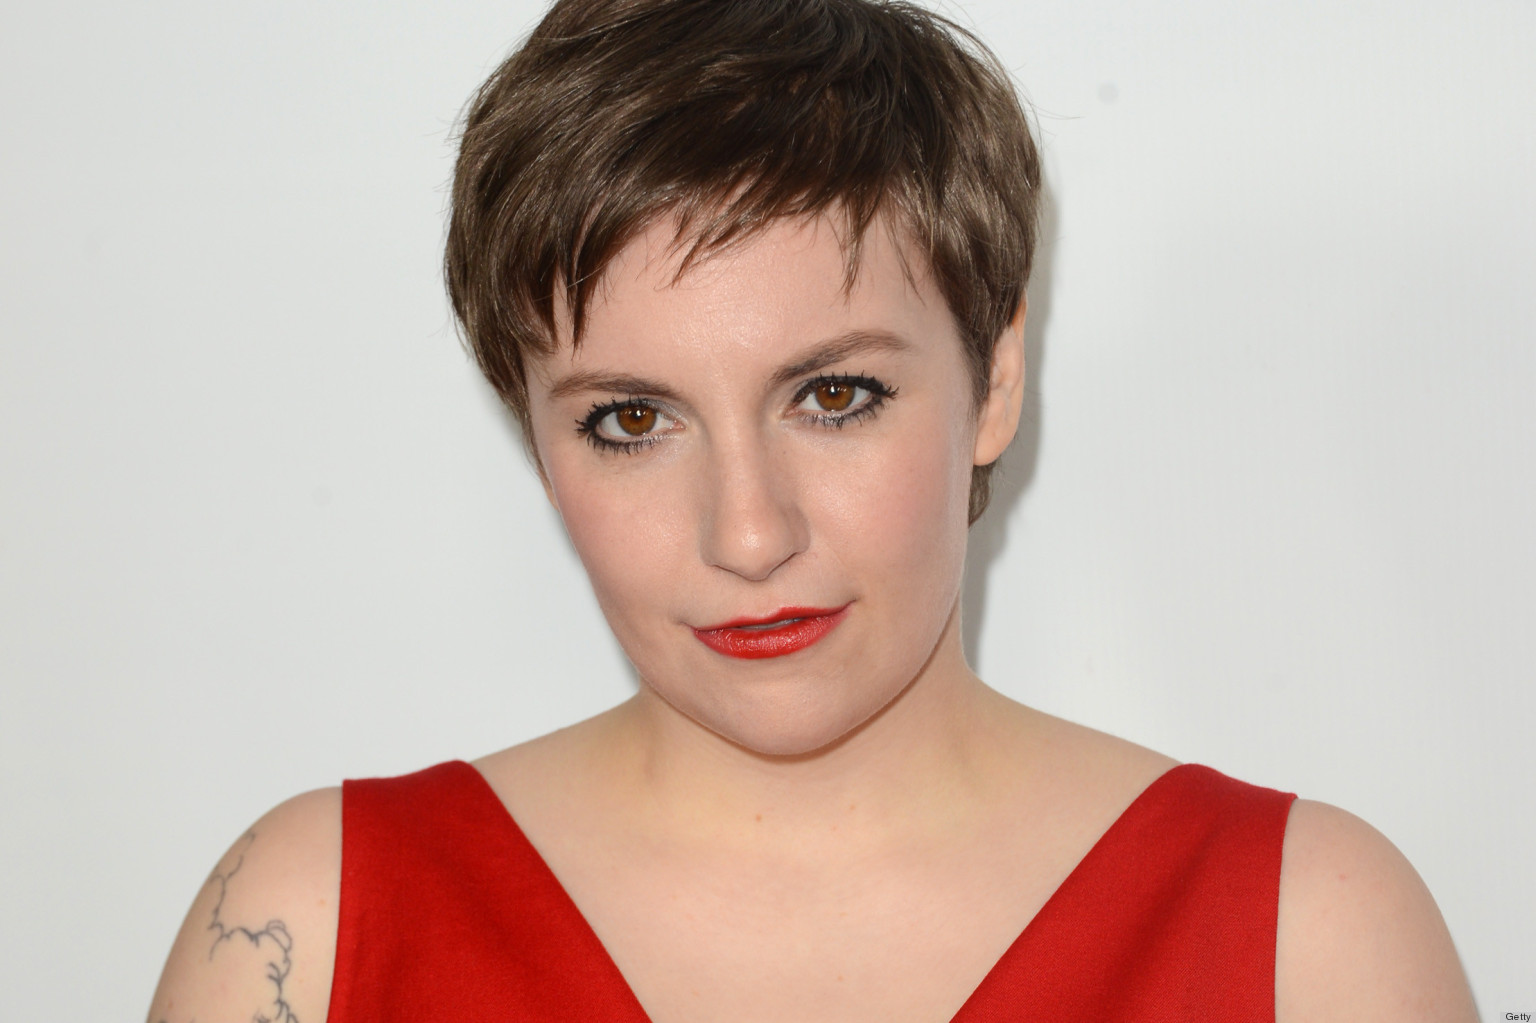 Lena Dunham found the famous video demeaning